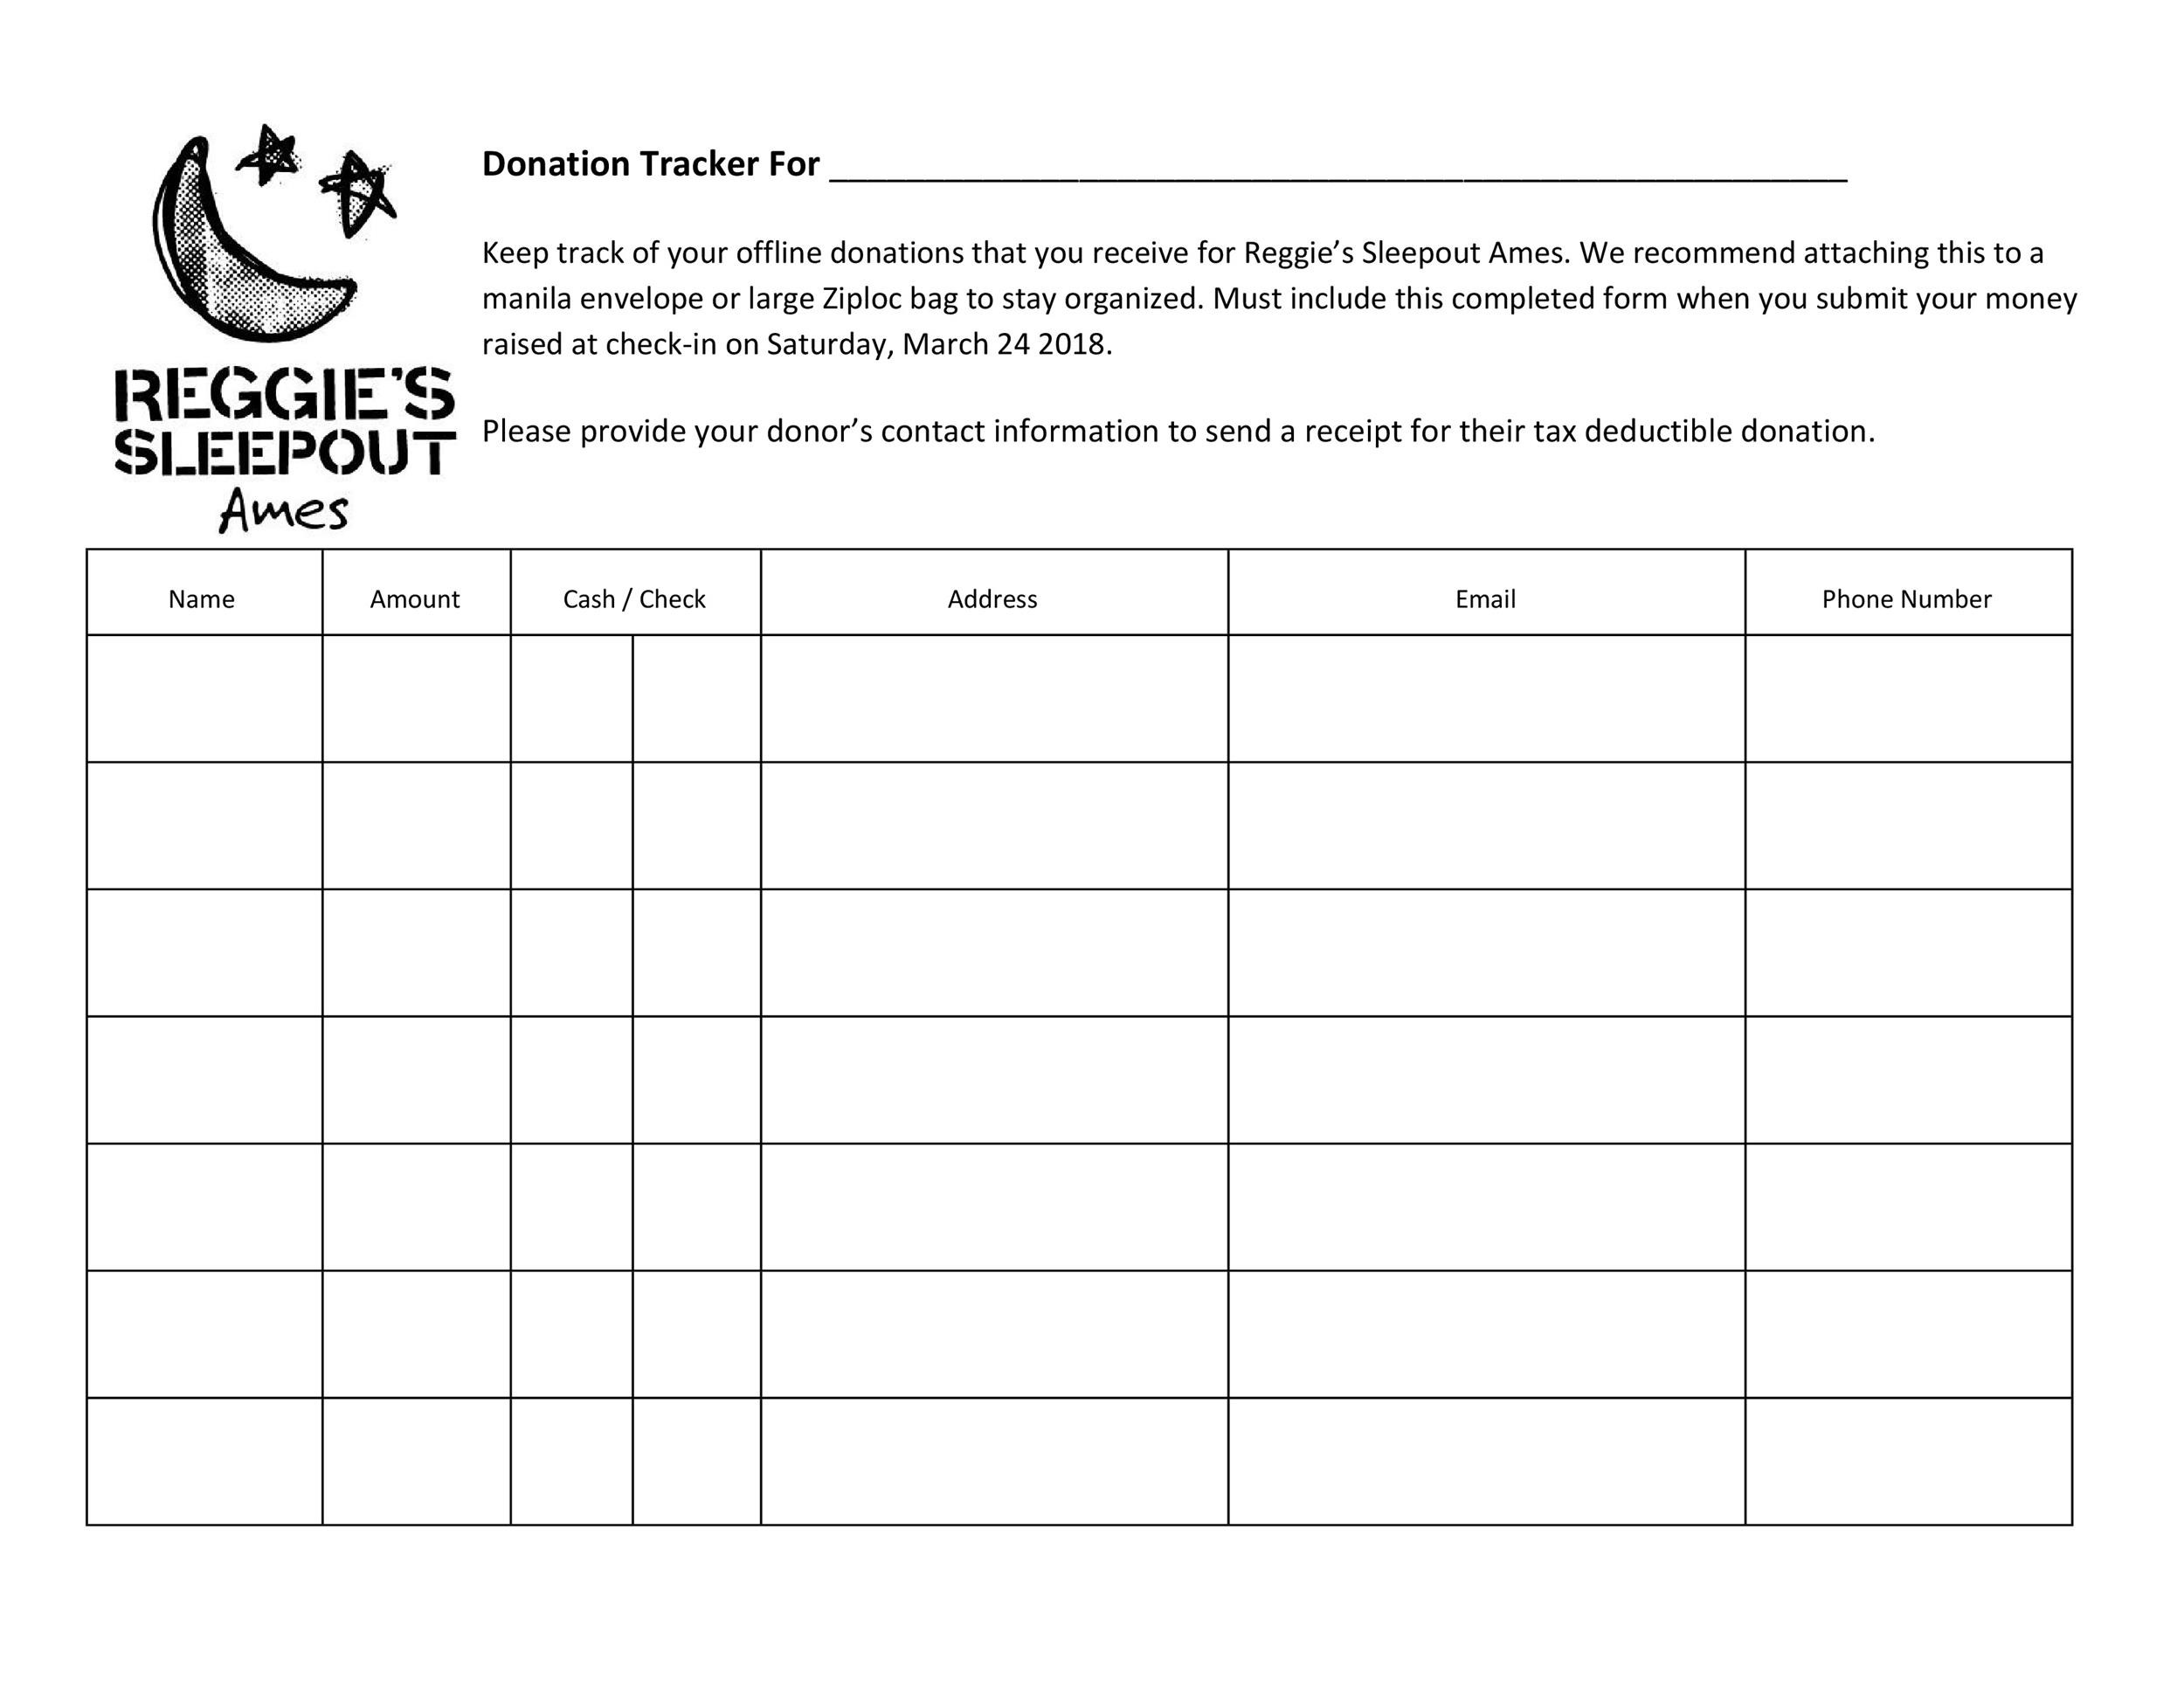 34 Professional Donation  Fundraiser Tracker Templates ᐅ Template Lab